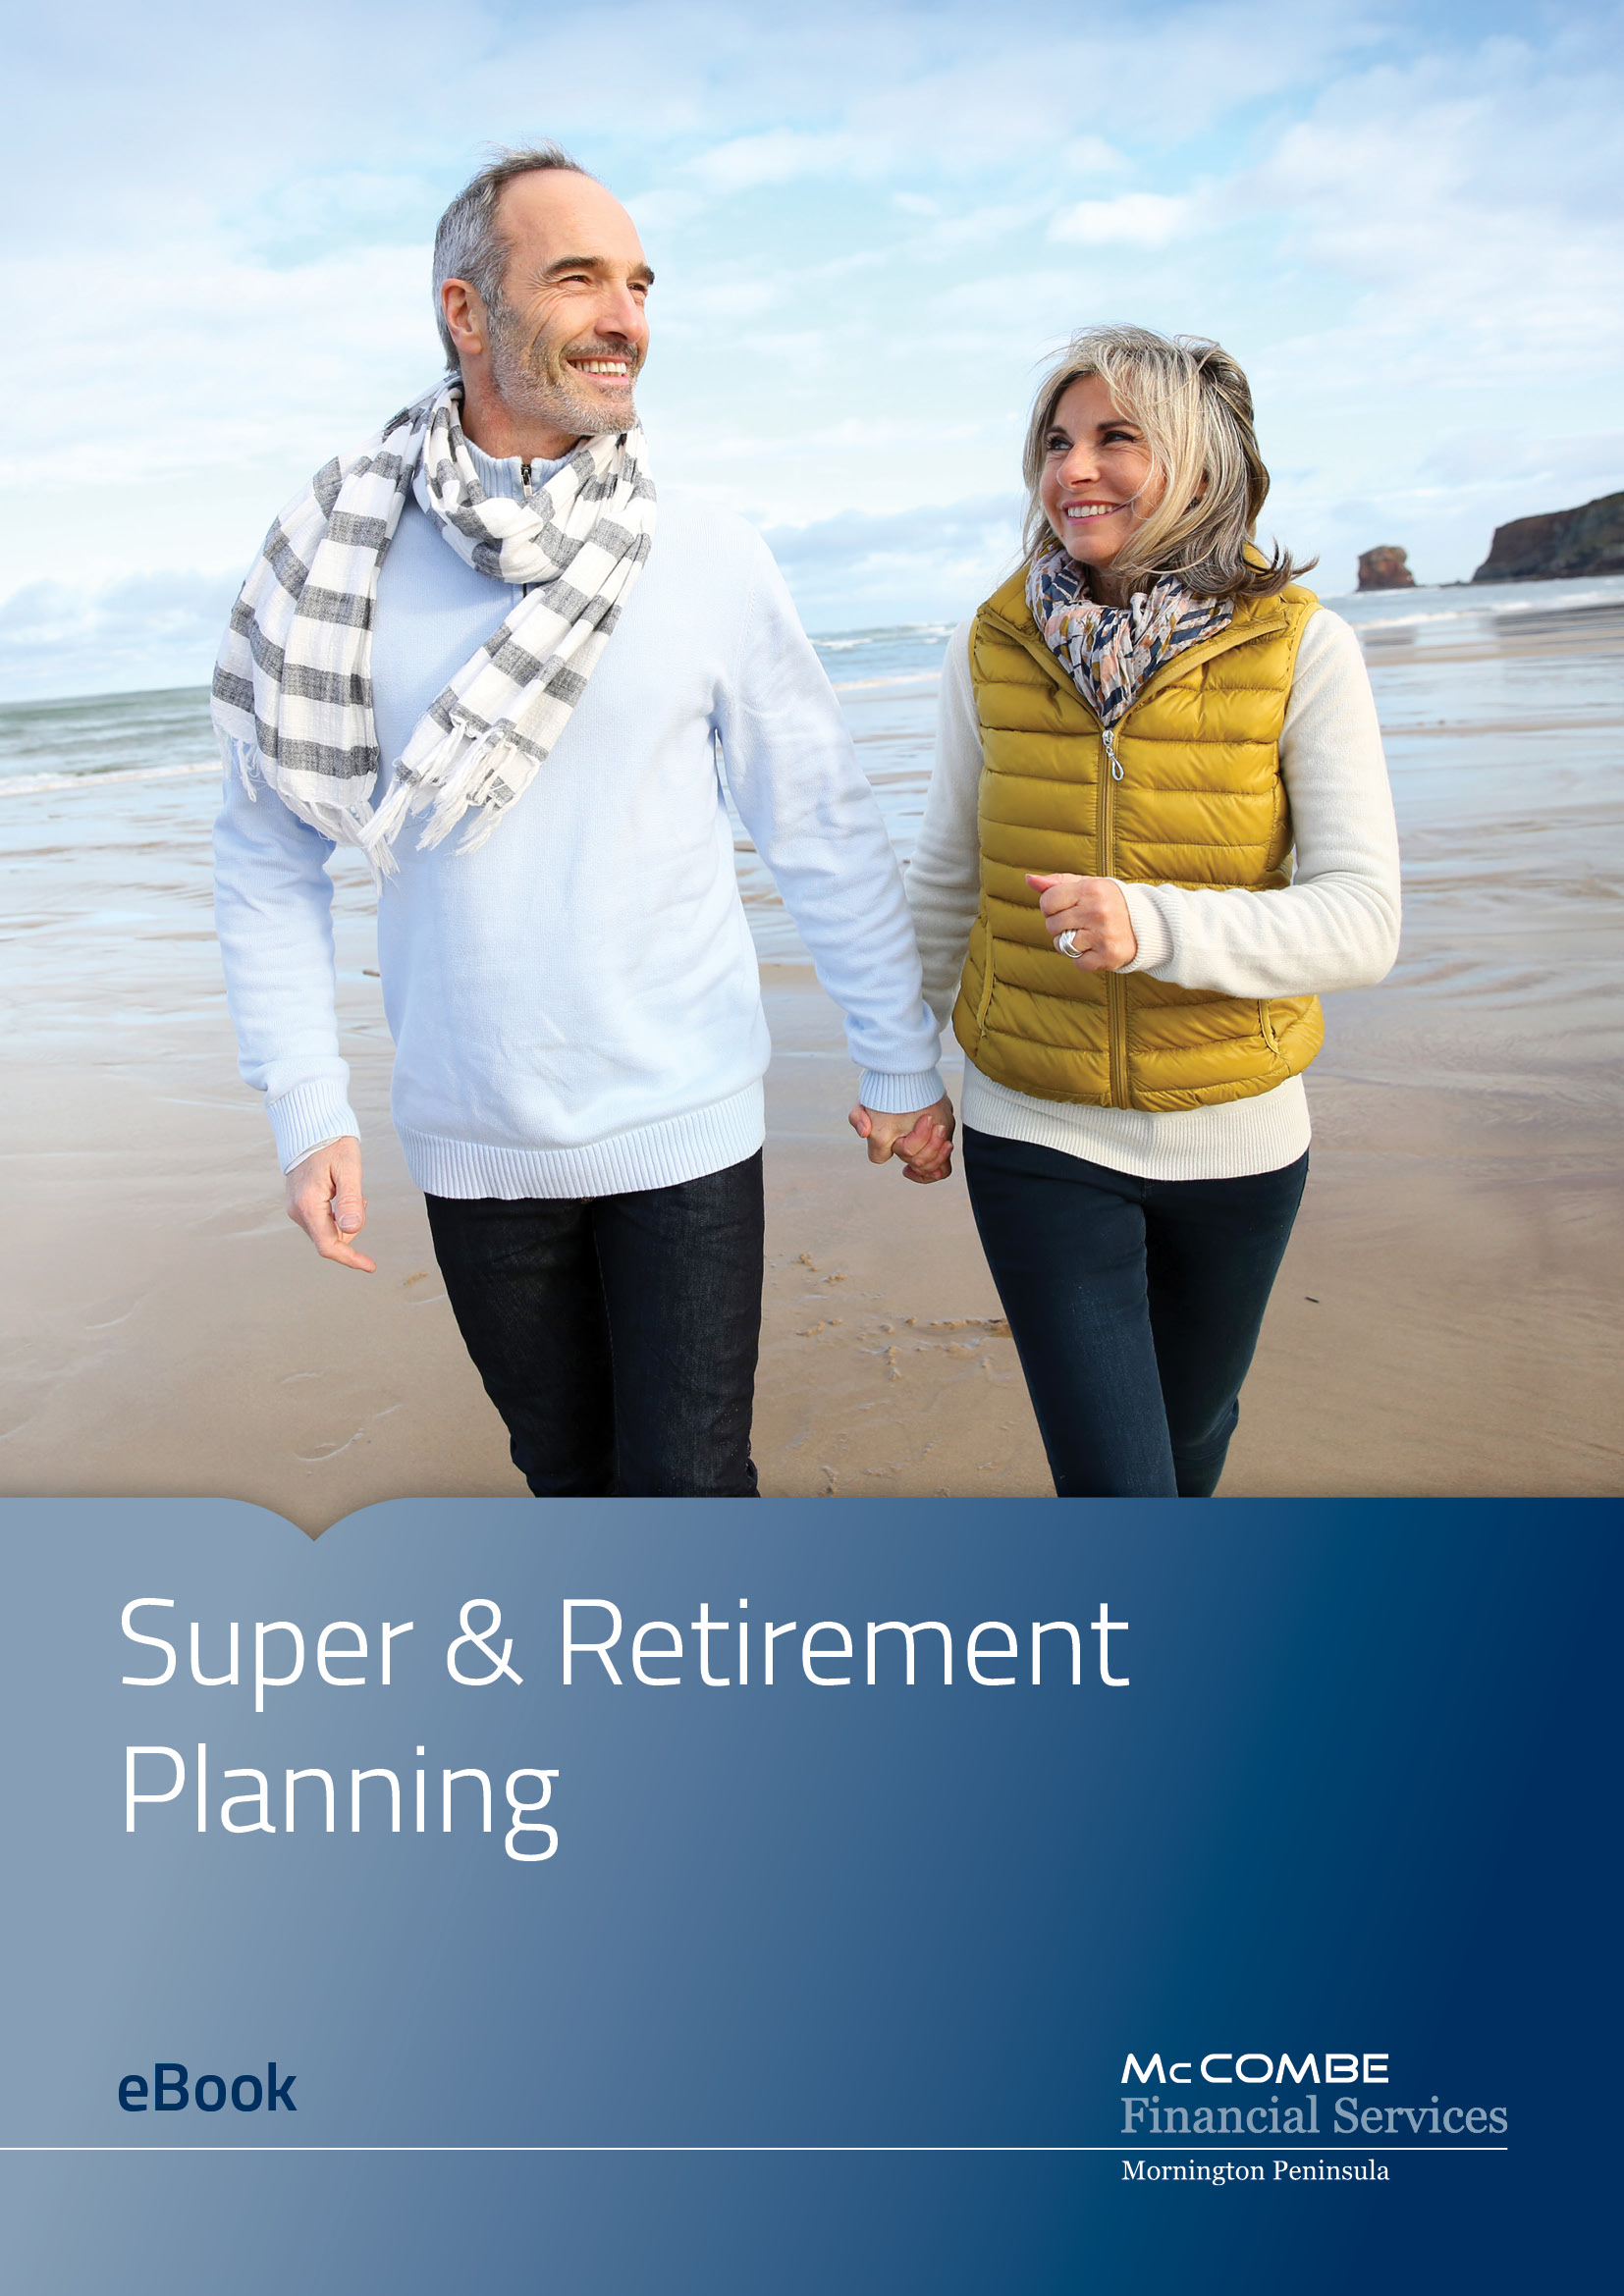 Super and Retirement Planning